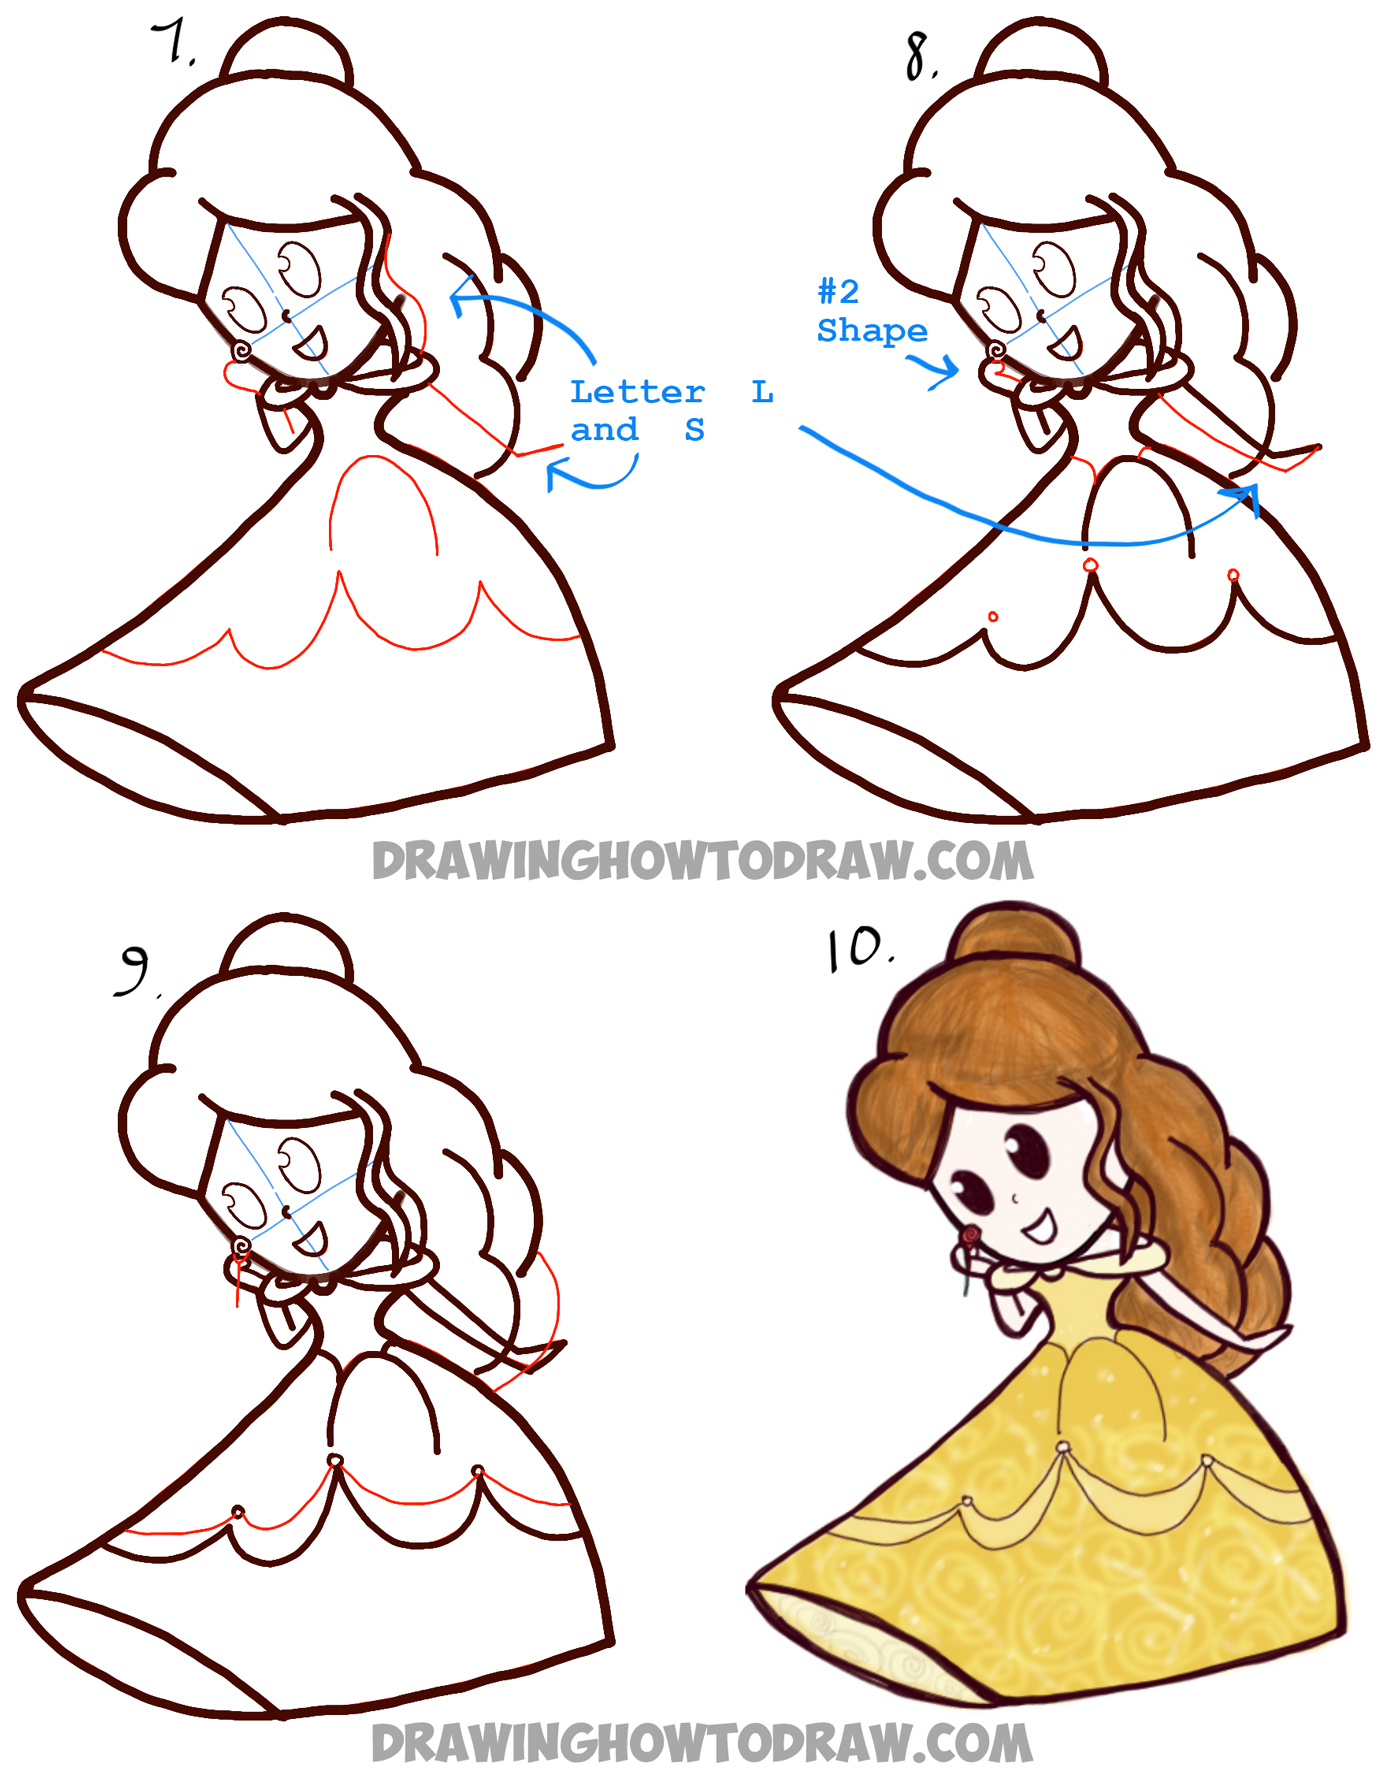 how to draw cute baby chibi belle from beauty and the beast disney princess